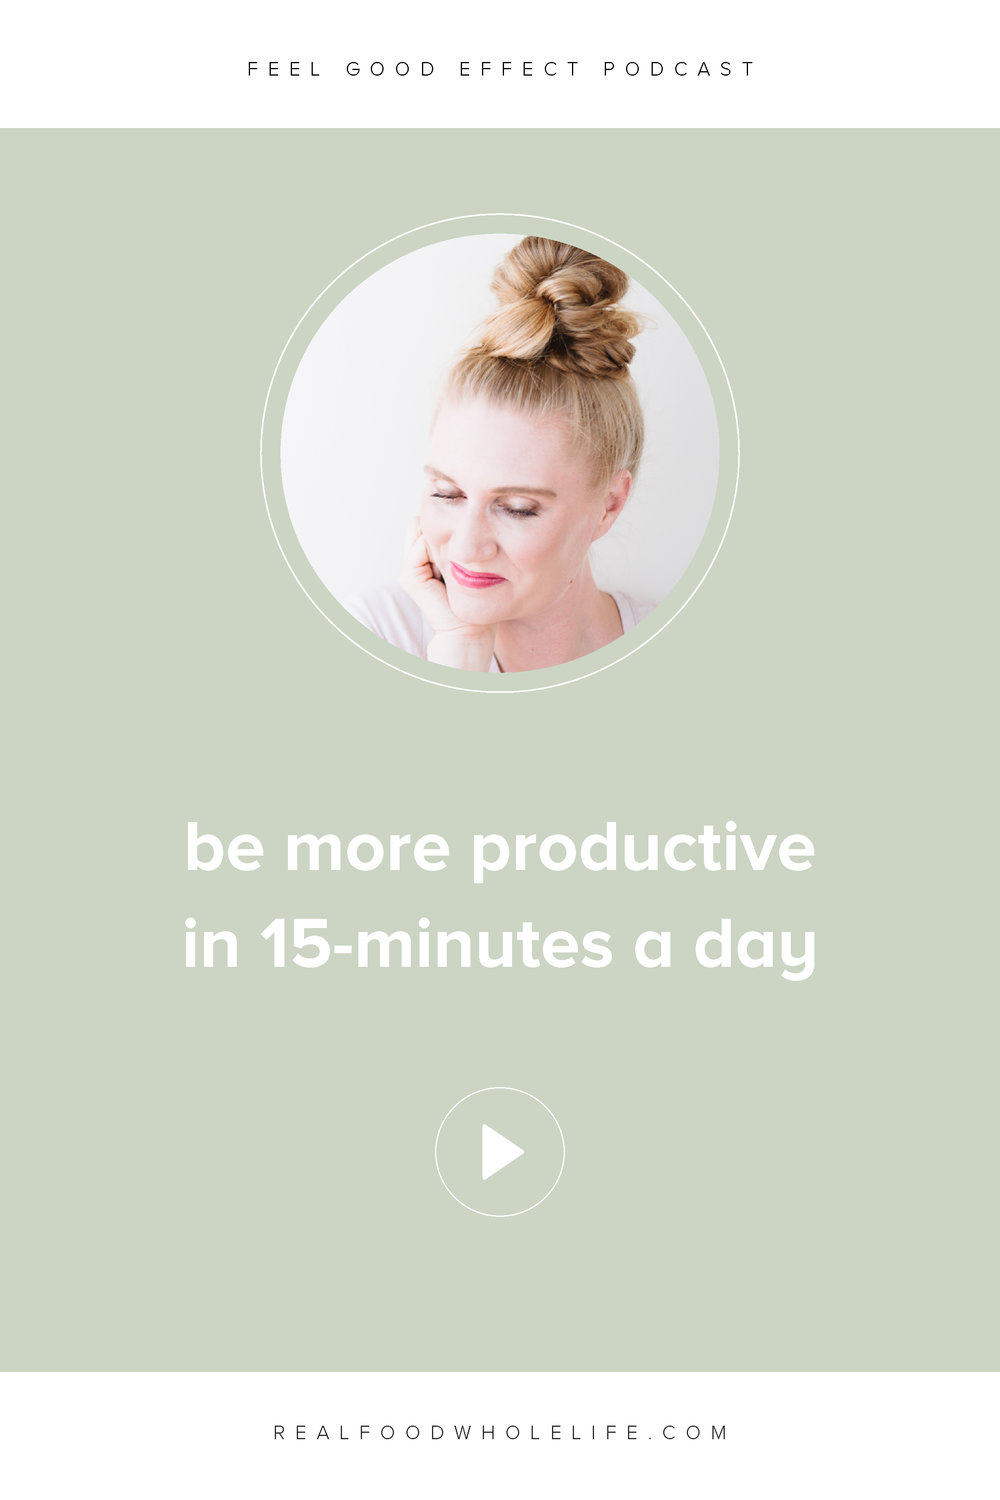 Be more productive in 15-minutes a day, an episode from the Feel Good Effect #feelgoodeffect #realfoodwholelife #wellnesspodcast #poductivity #gentleisthenewperfect